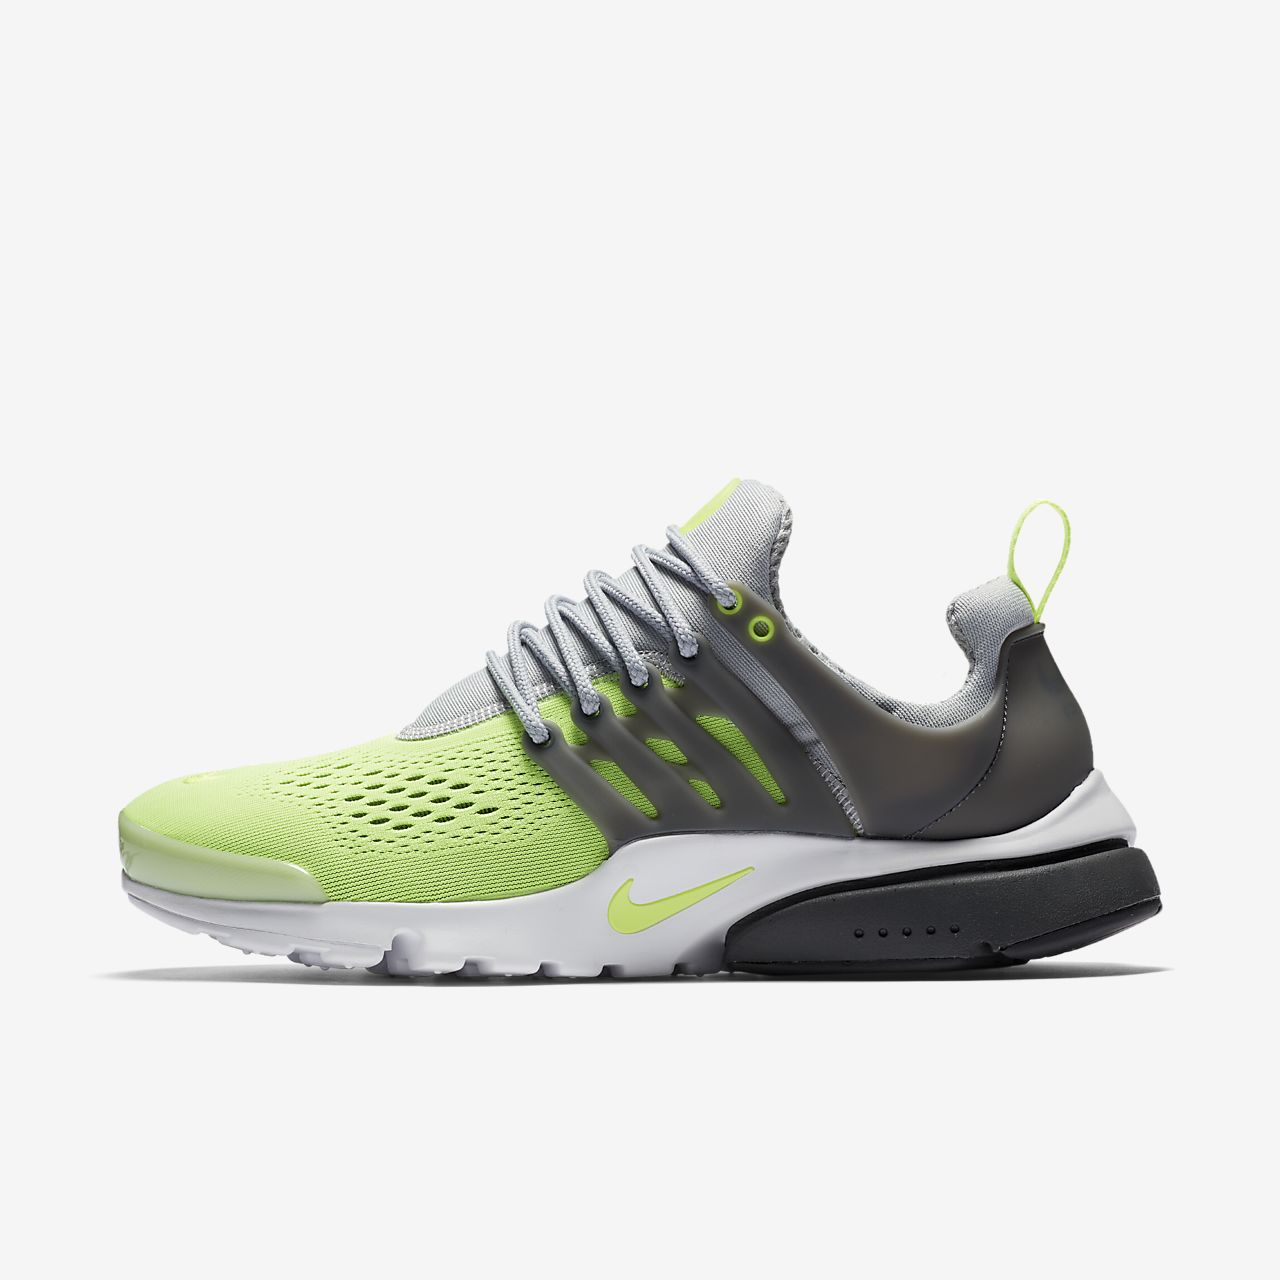 ... Nike Air Presto Ultra Breathe Men's Shoe